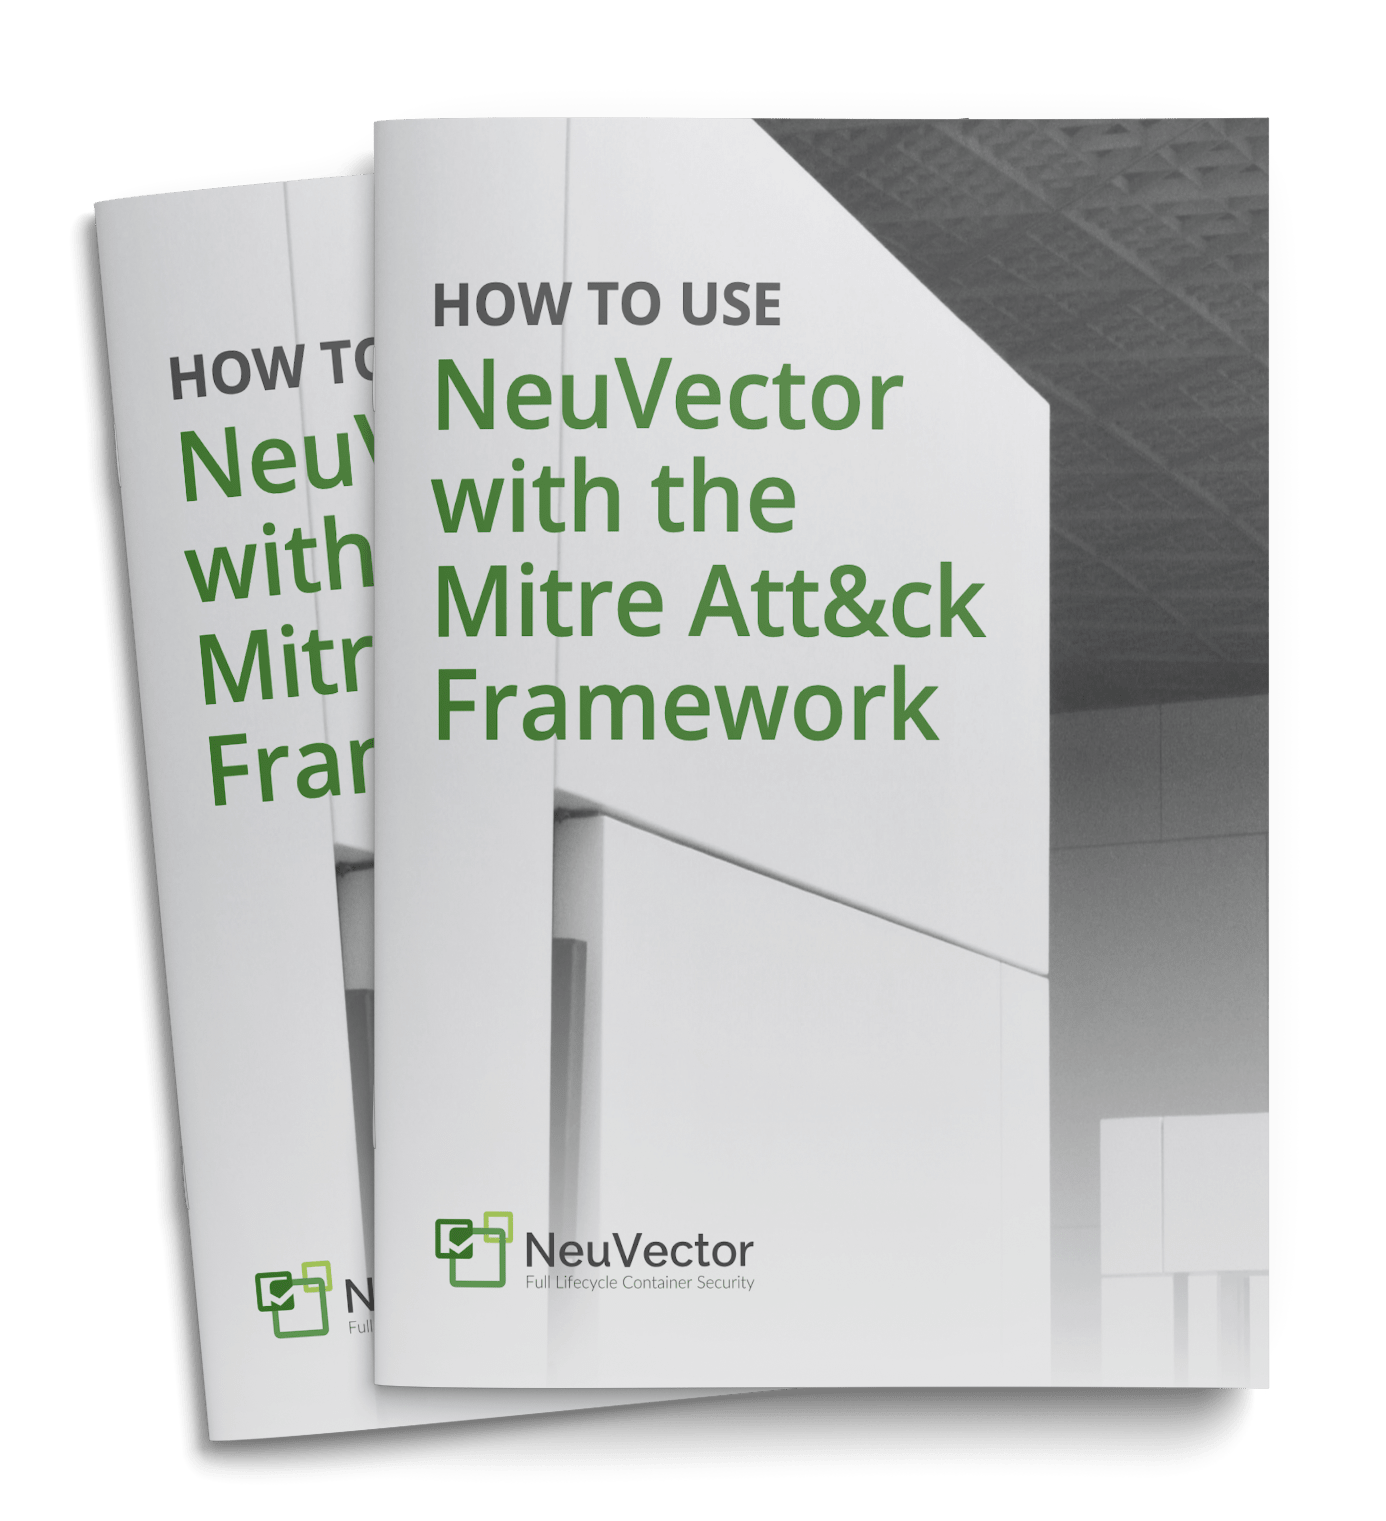 How to Use NeuVector with the Mitre Att&ck Framework